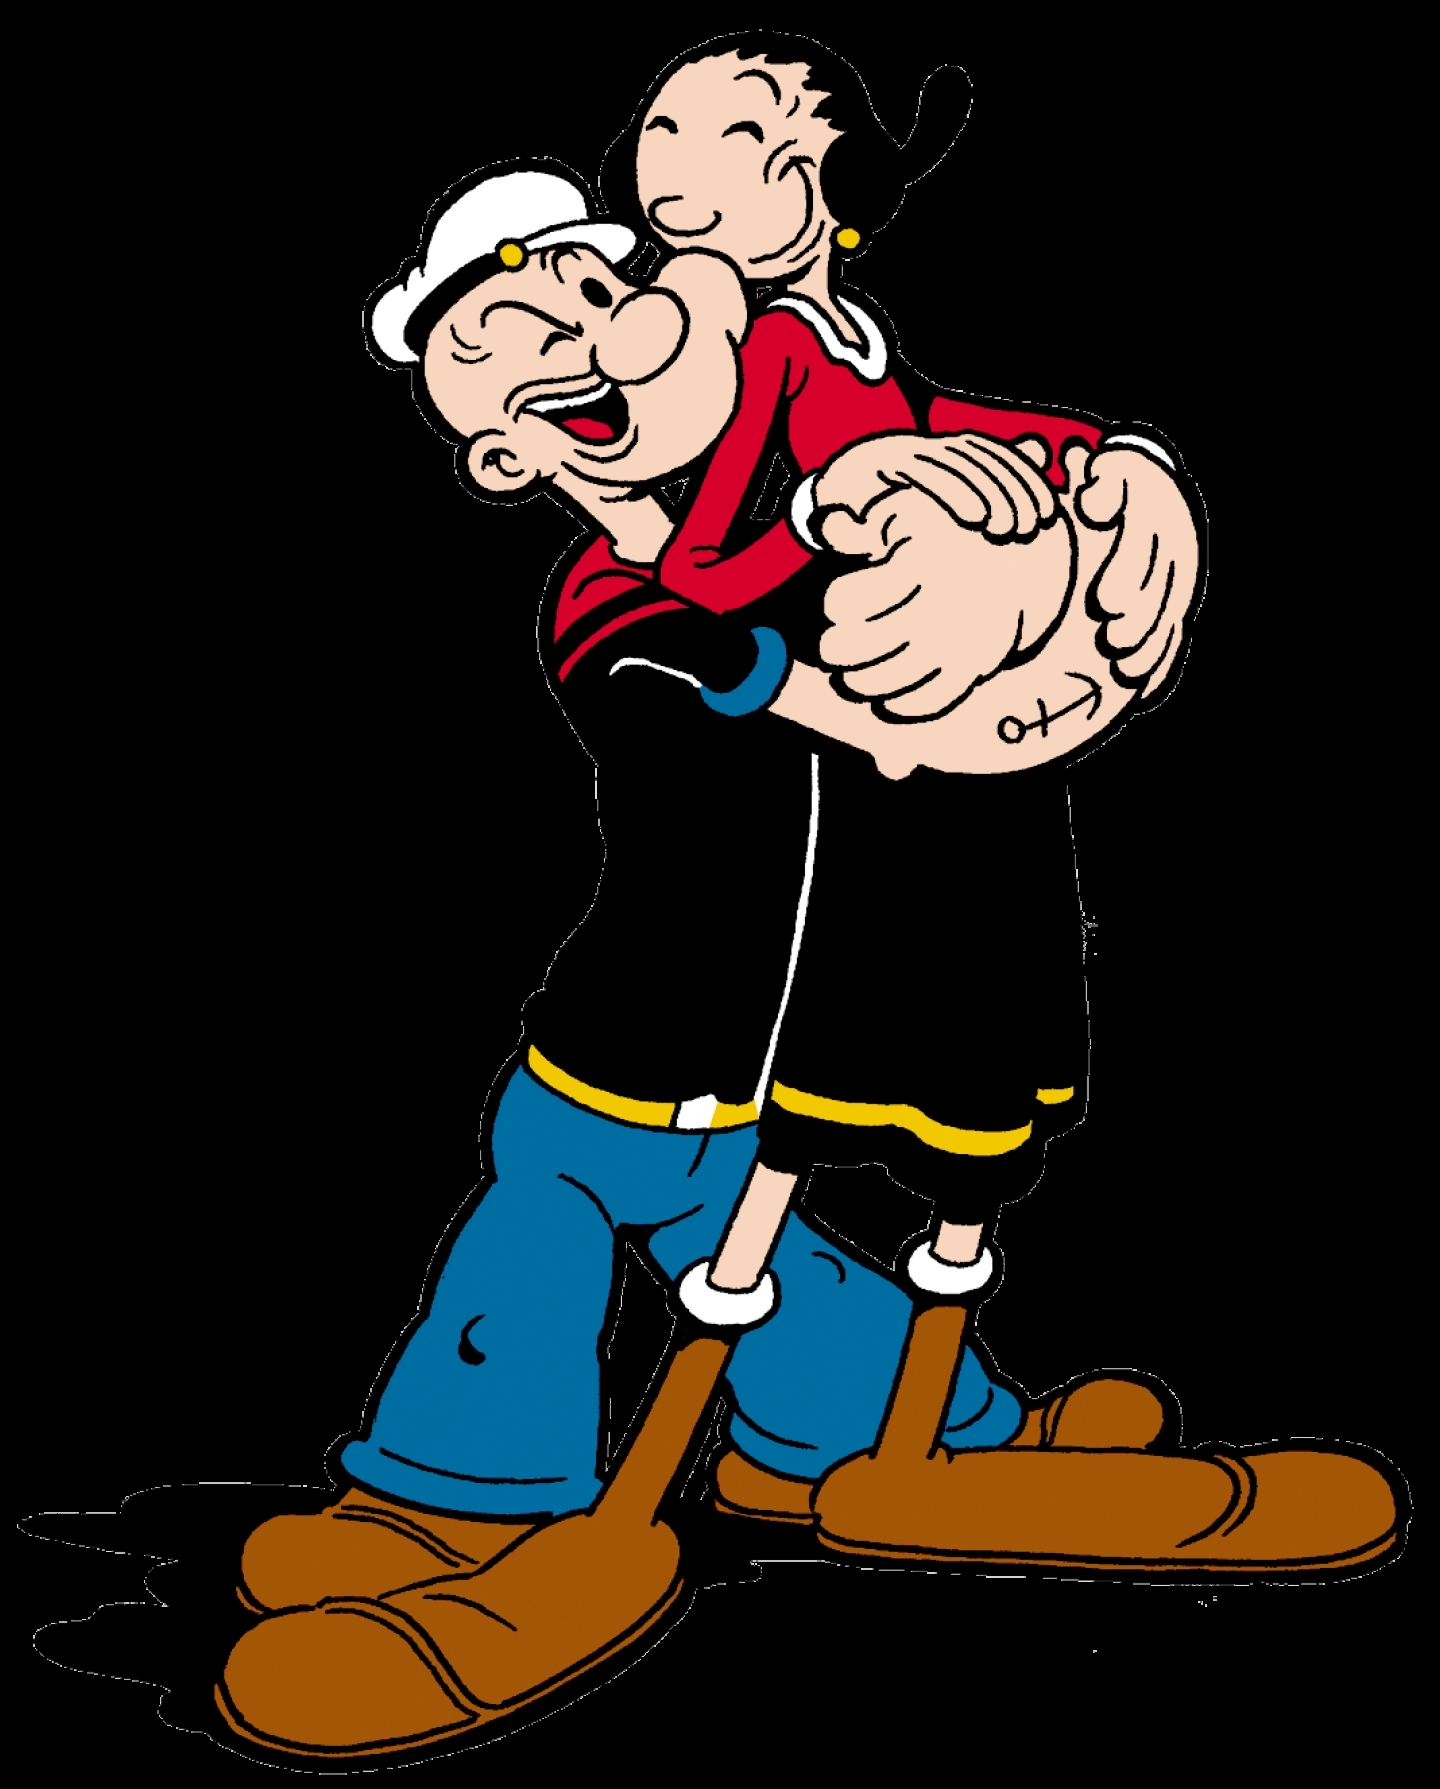 sailor man popeye olive 1440x900